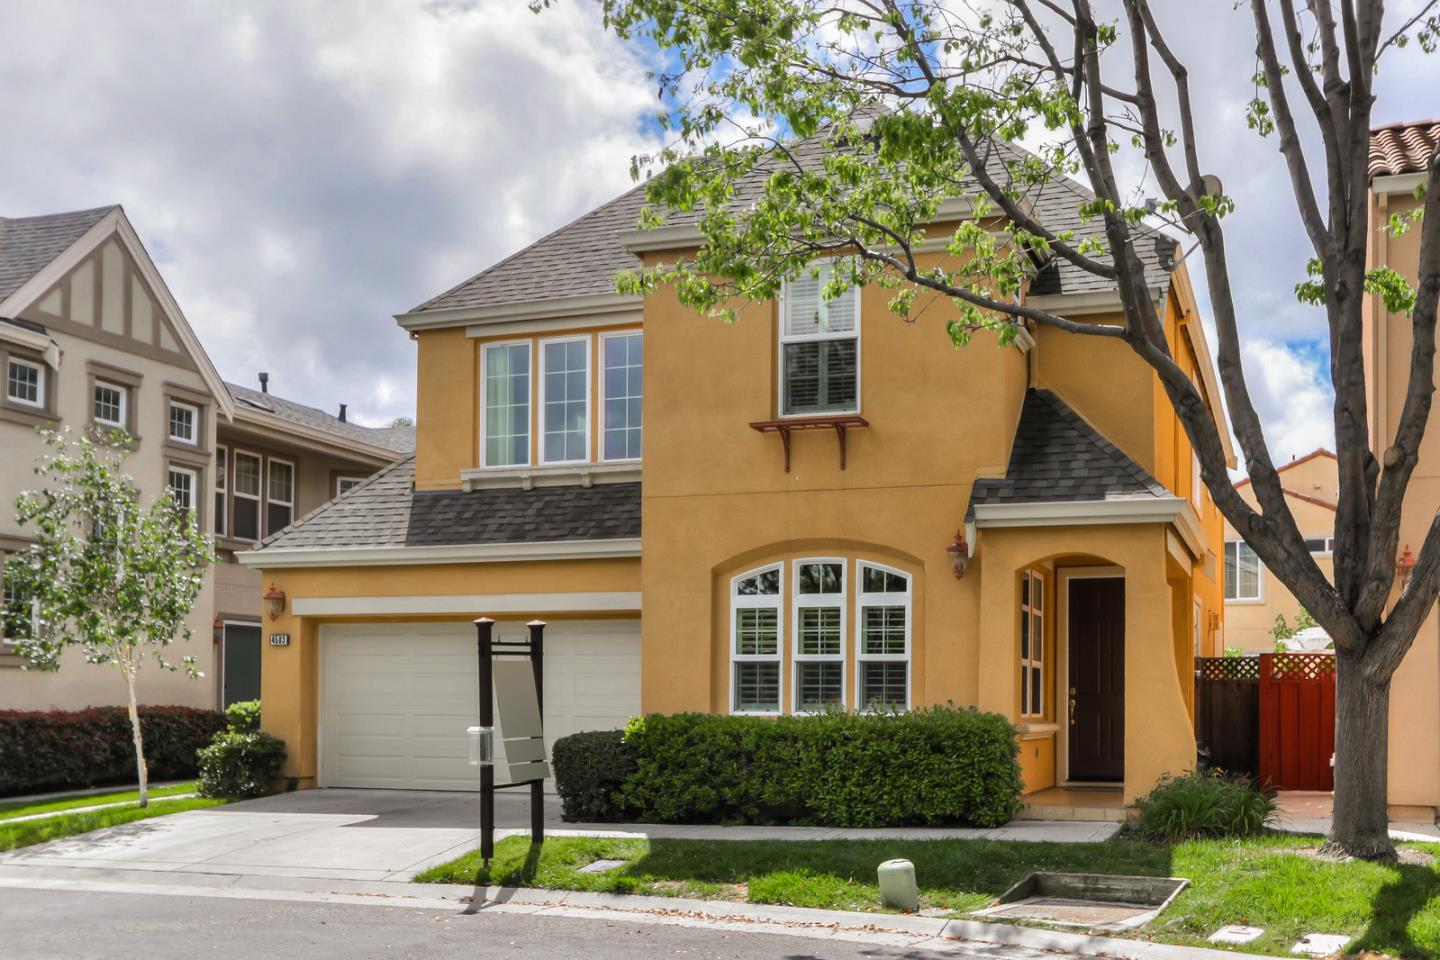 4503 Billings CIR, Santa Clara, California